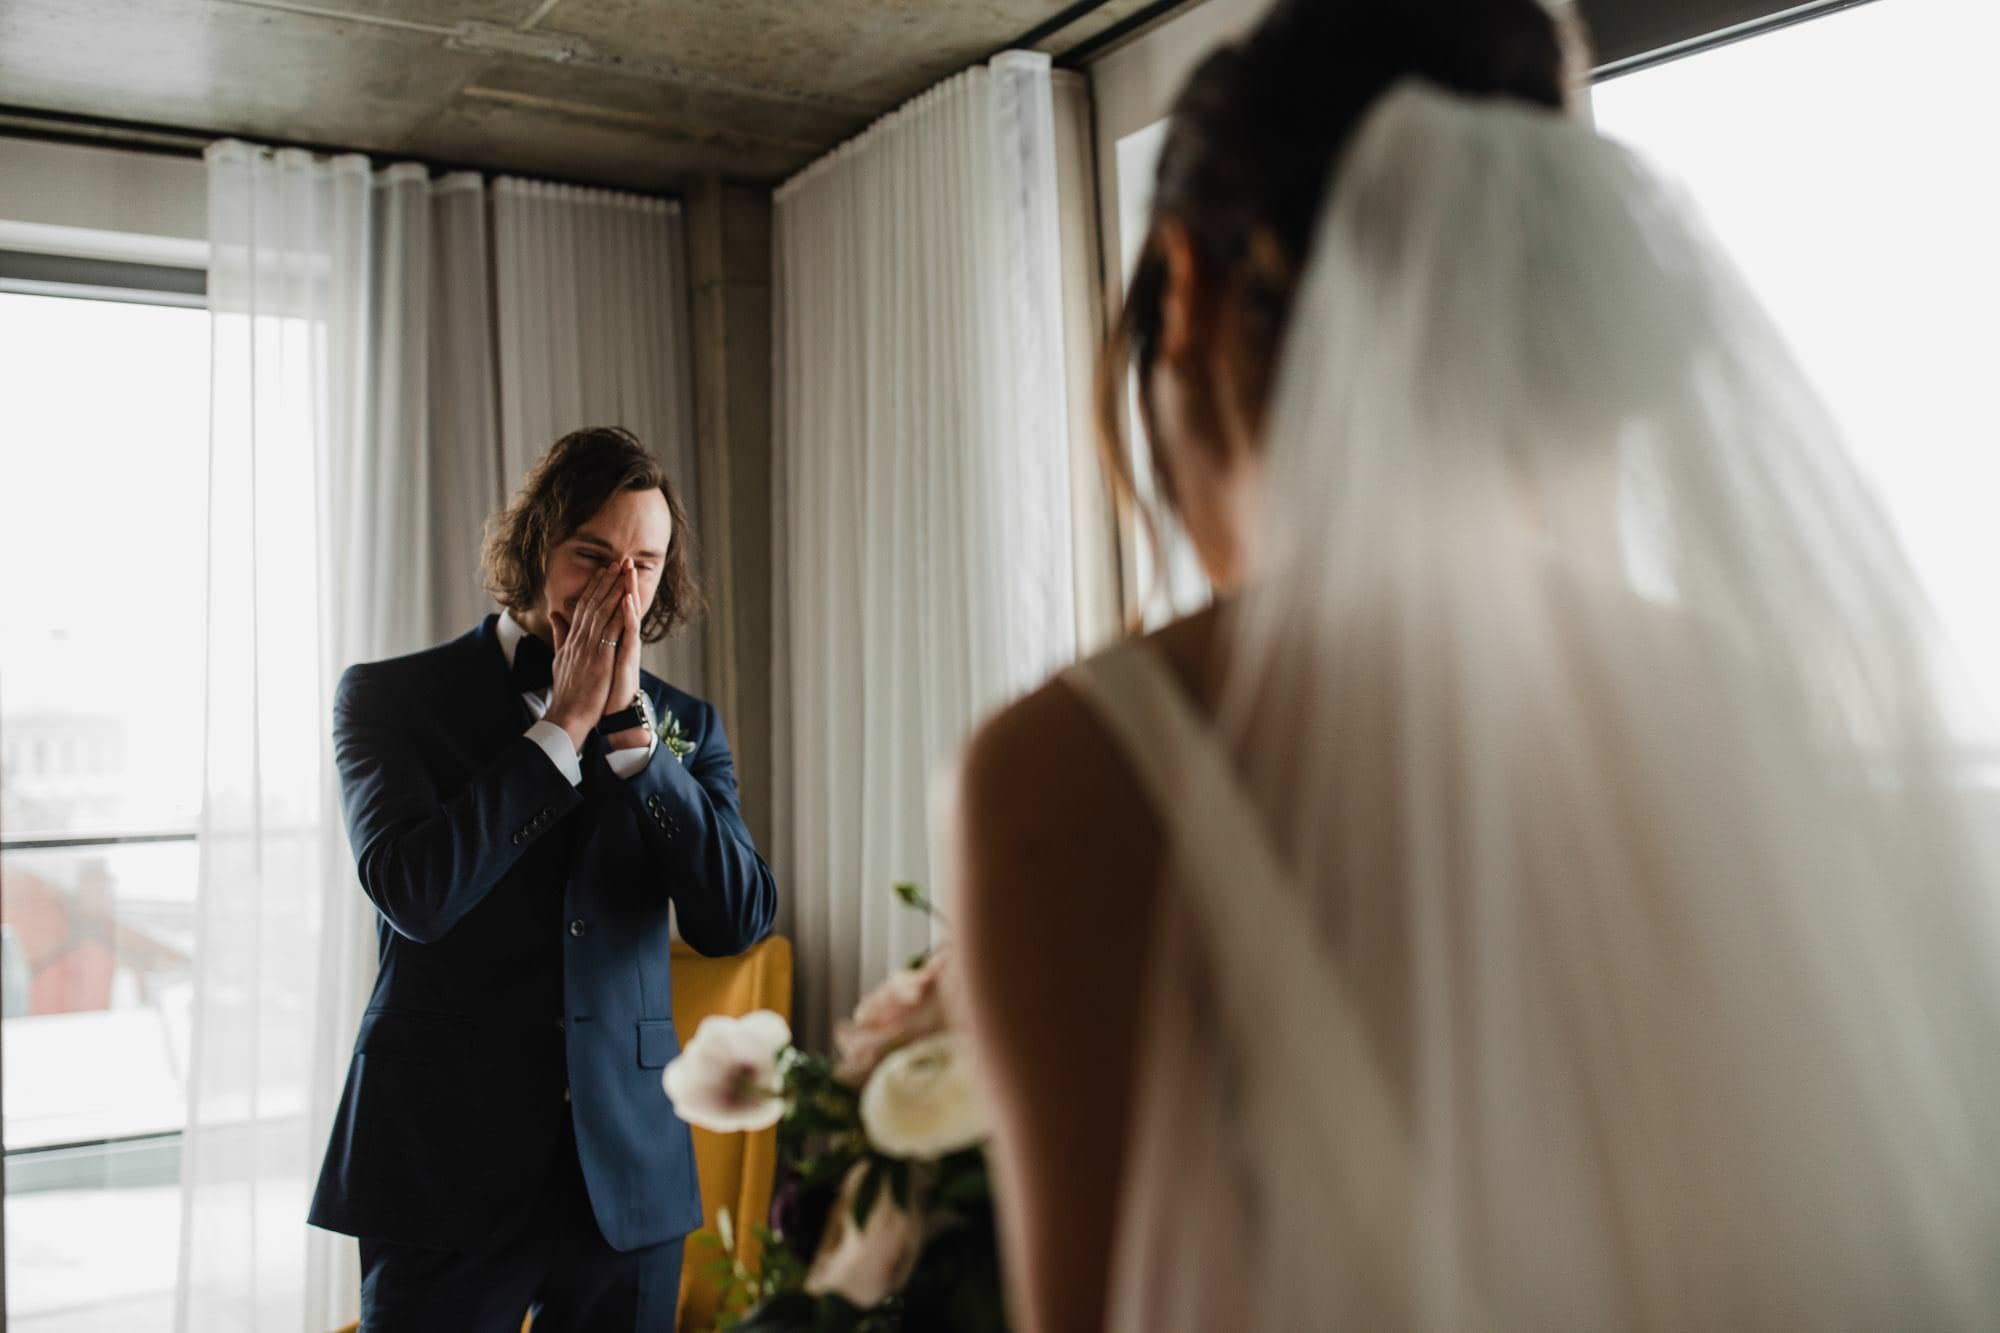 The groom has hands up covering face as he reacts to seeing bride in her dress for the first time